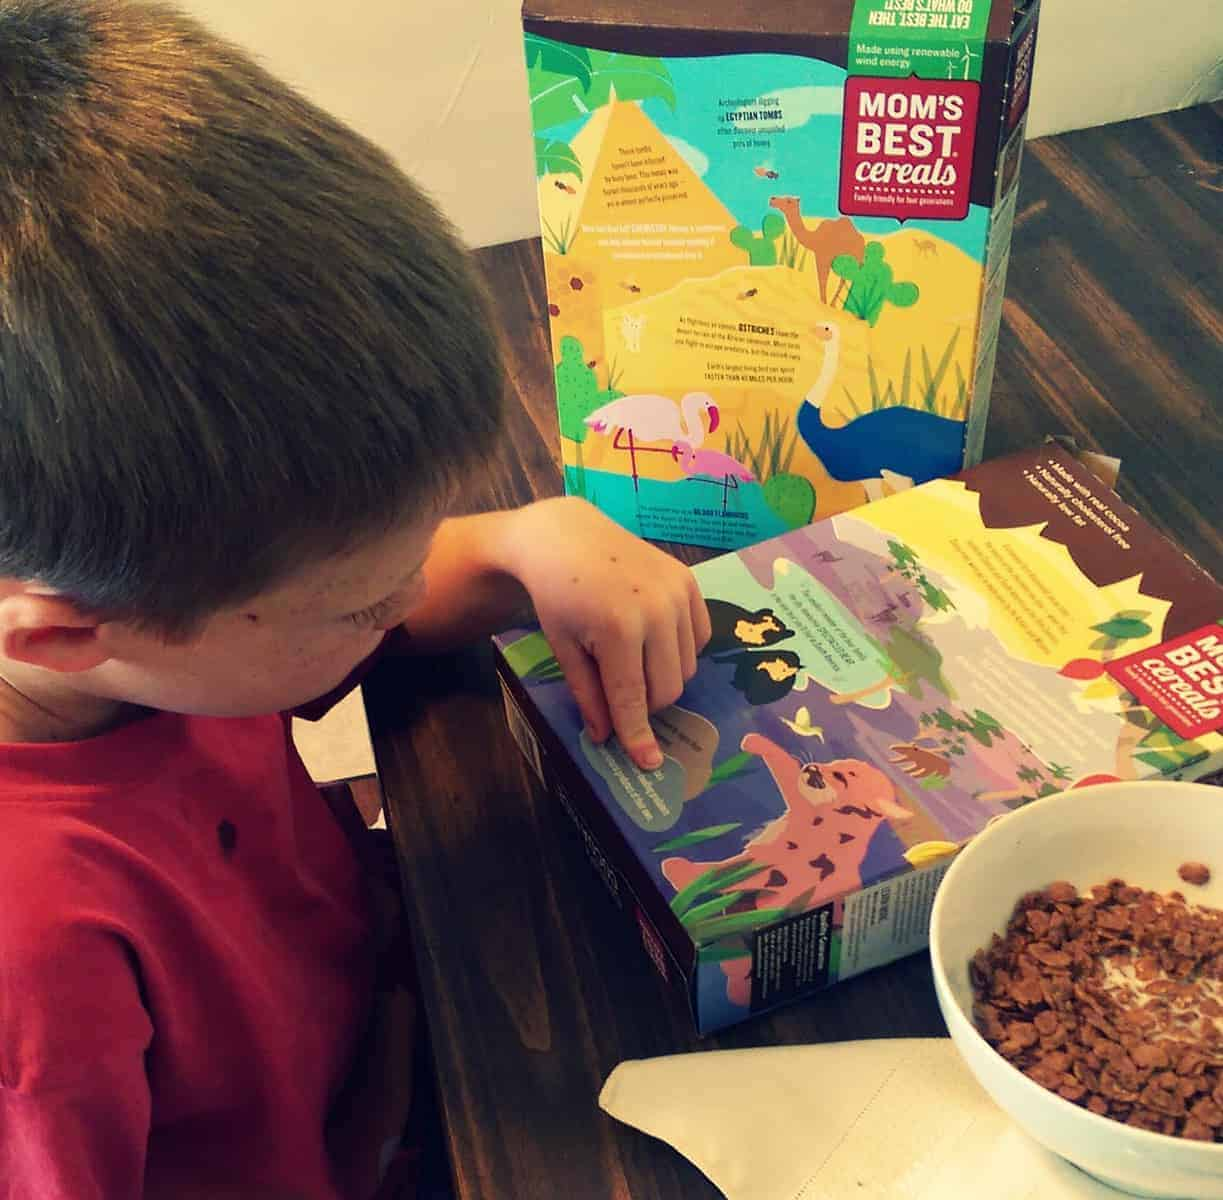 3 Ways to Make School Mornings Easier in partnership with Mom's Best Cereals